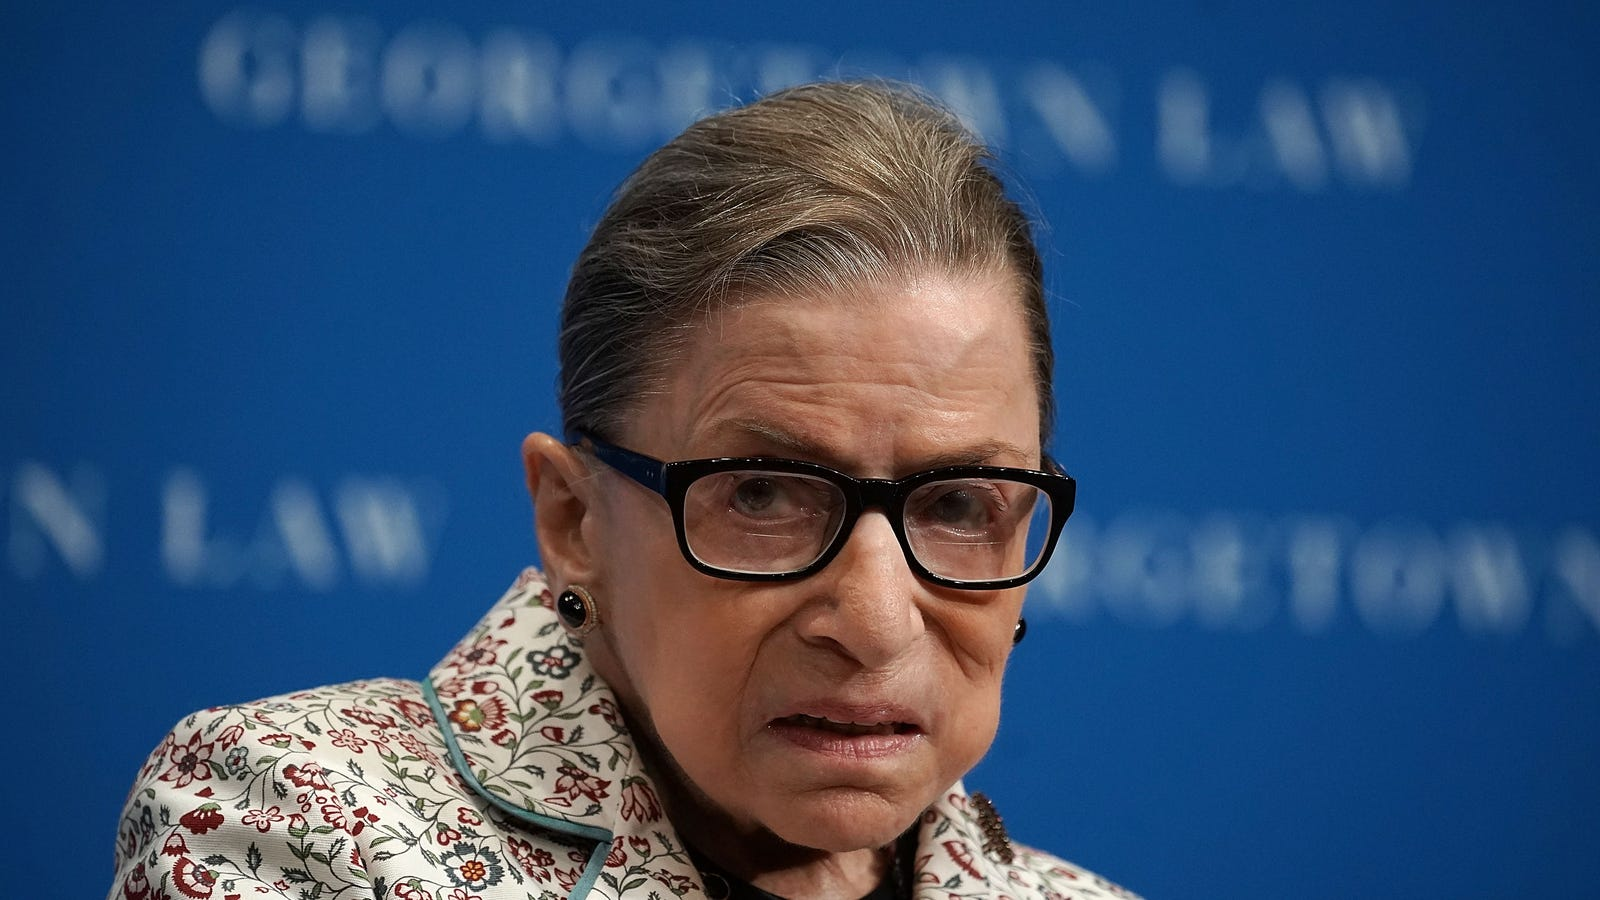 Black Twitter Invites Ruth Bader Ginsburg to Wakanda to Recieve Vibranium Ribs After Freak Accident